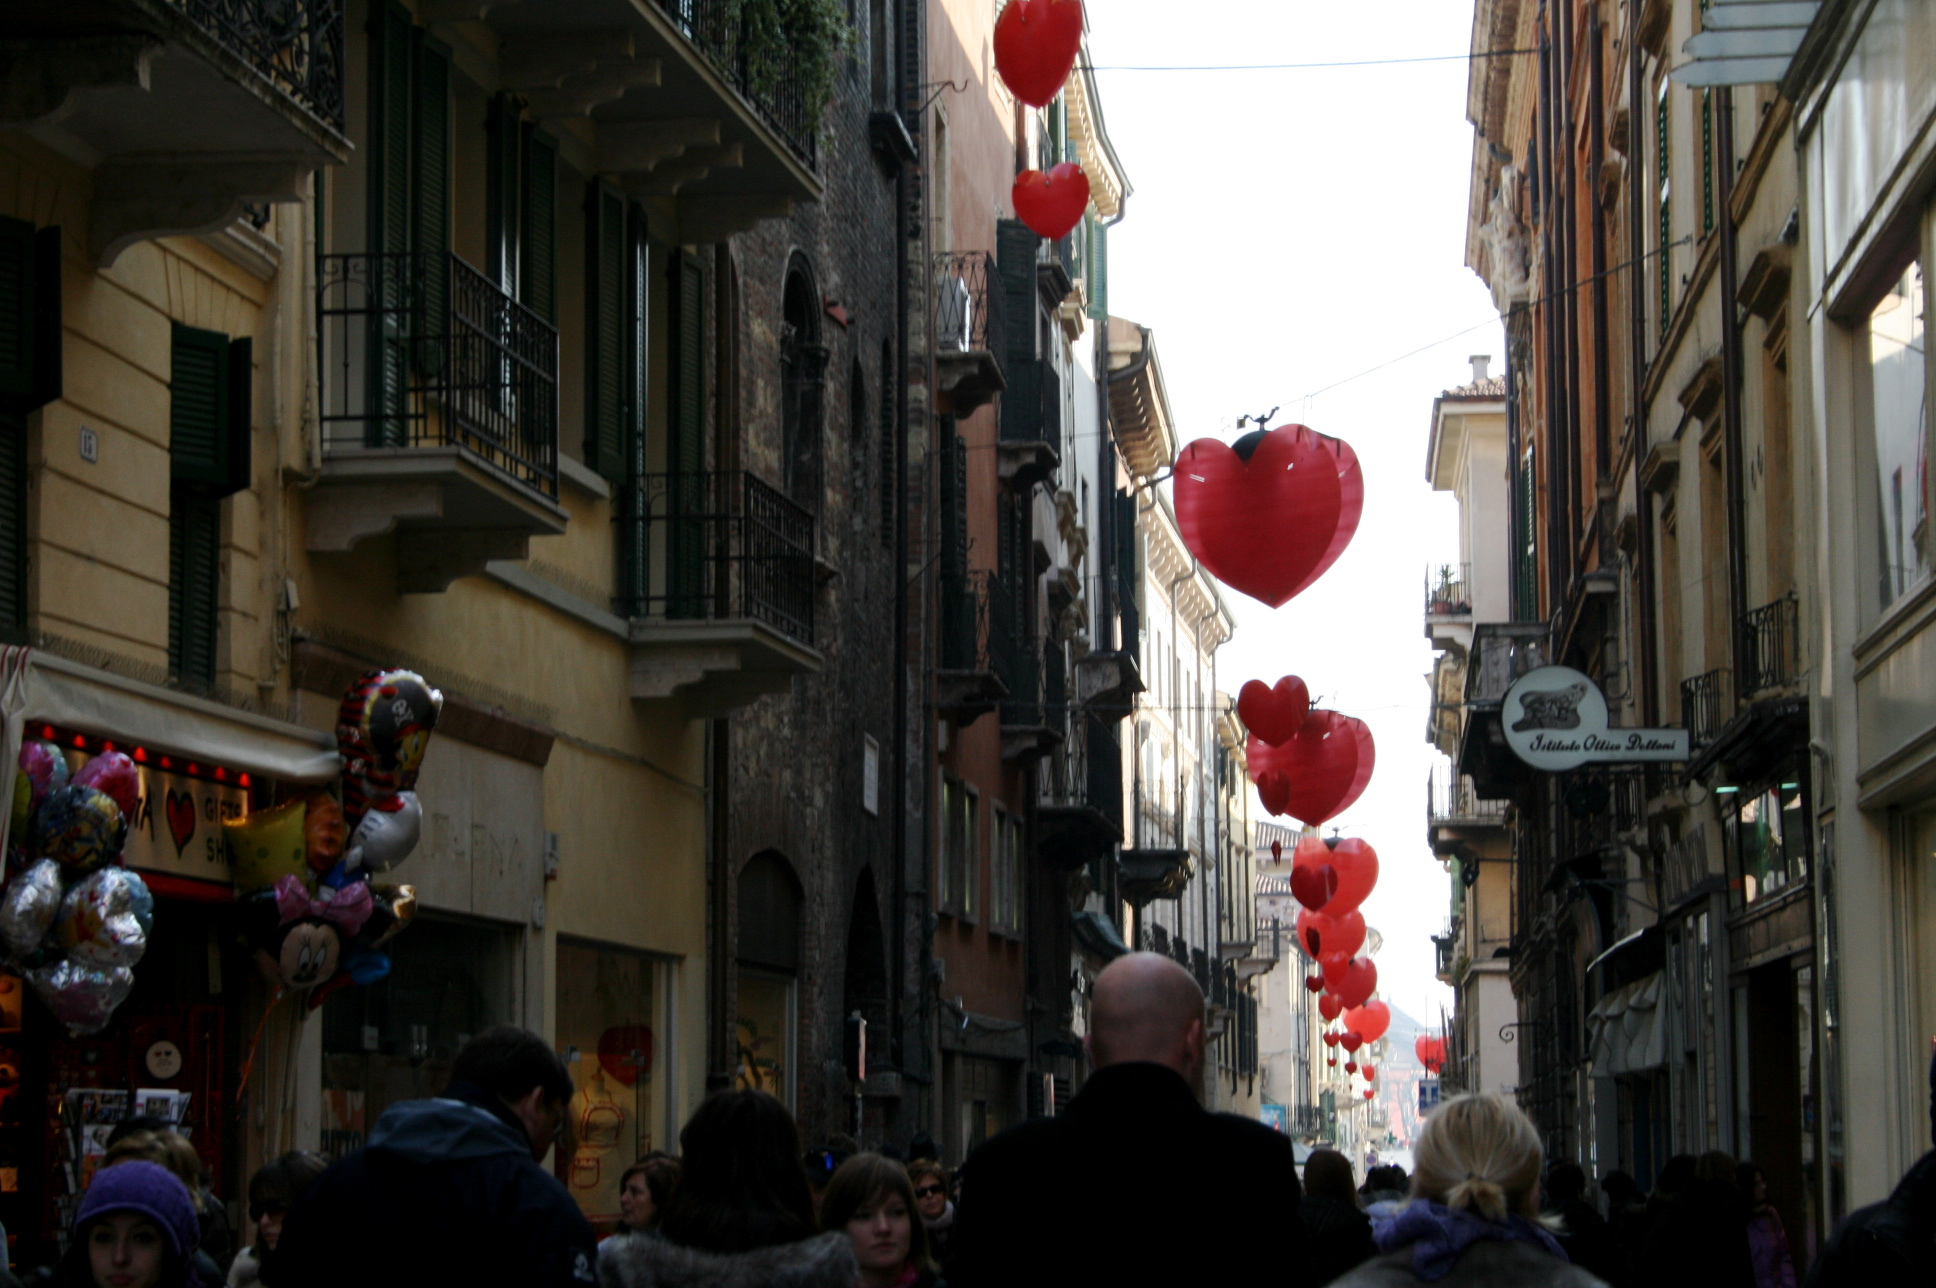 Event Holiday Verona Italy Valentines Day Street View